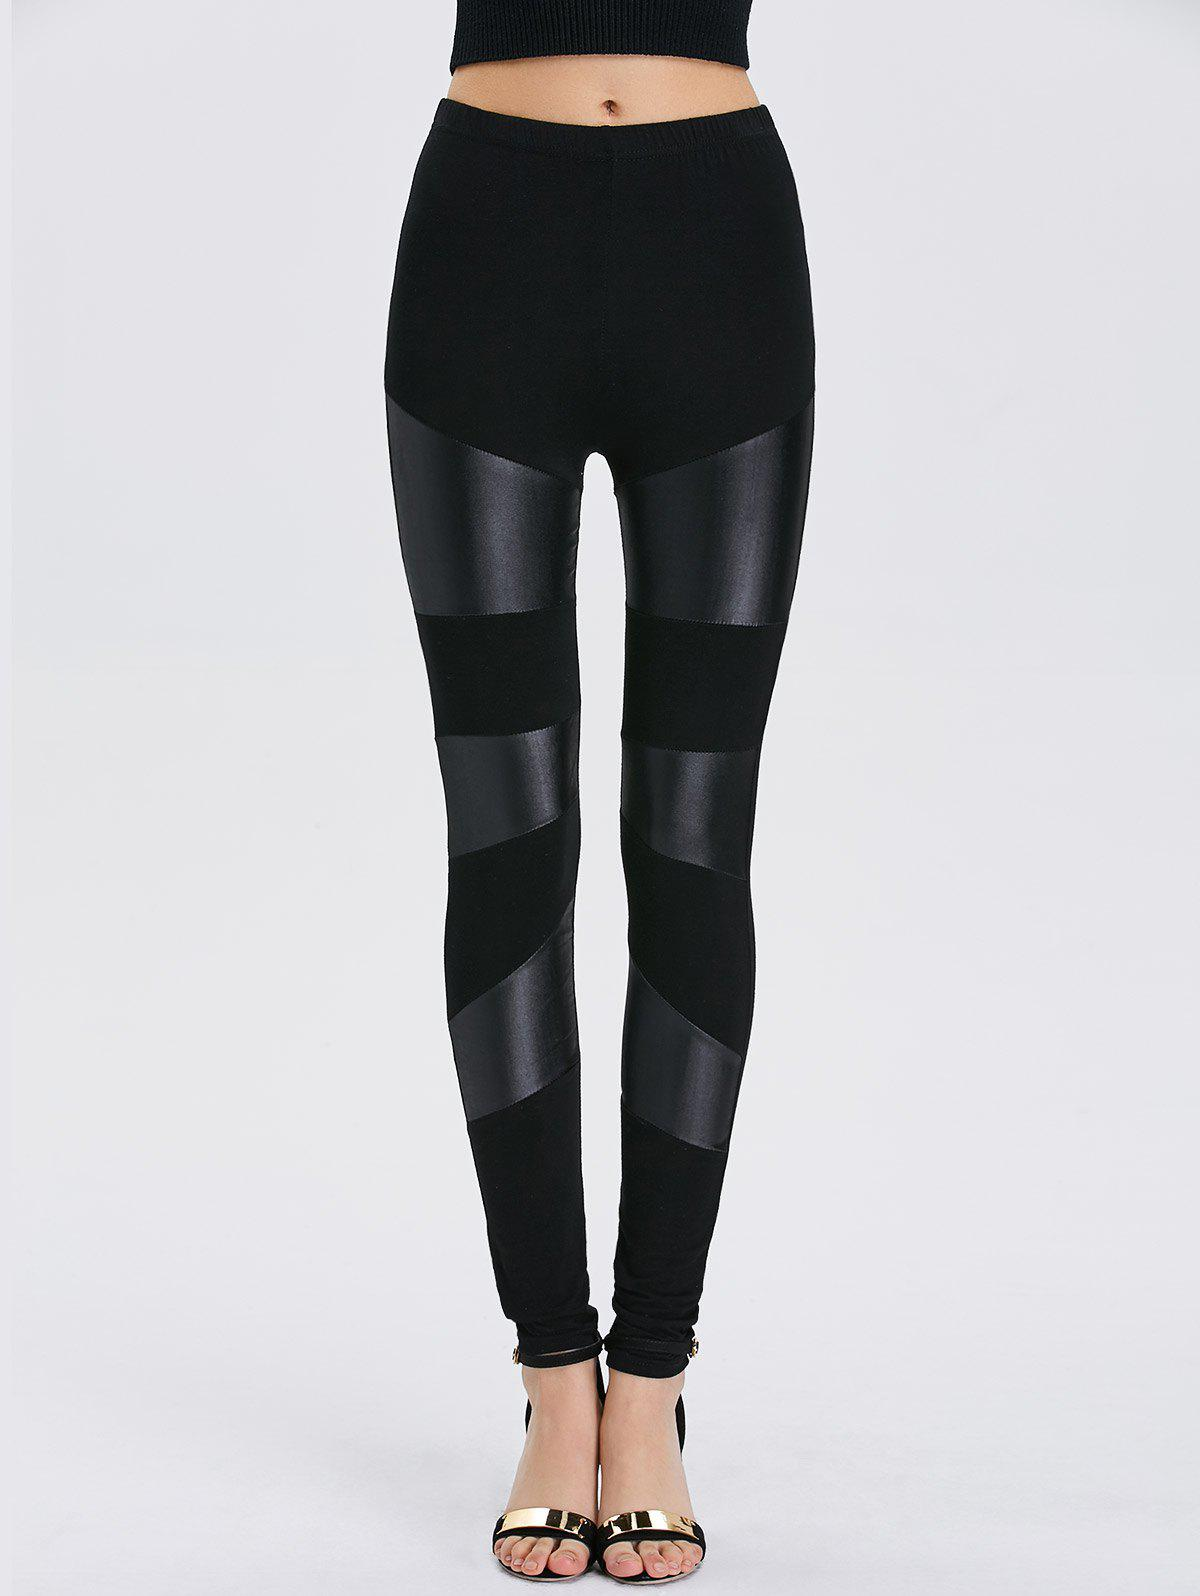 Store Faux Leather Bodycon Leggings